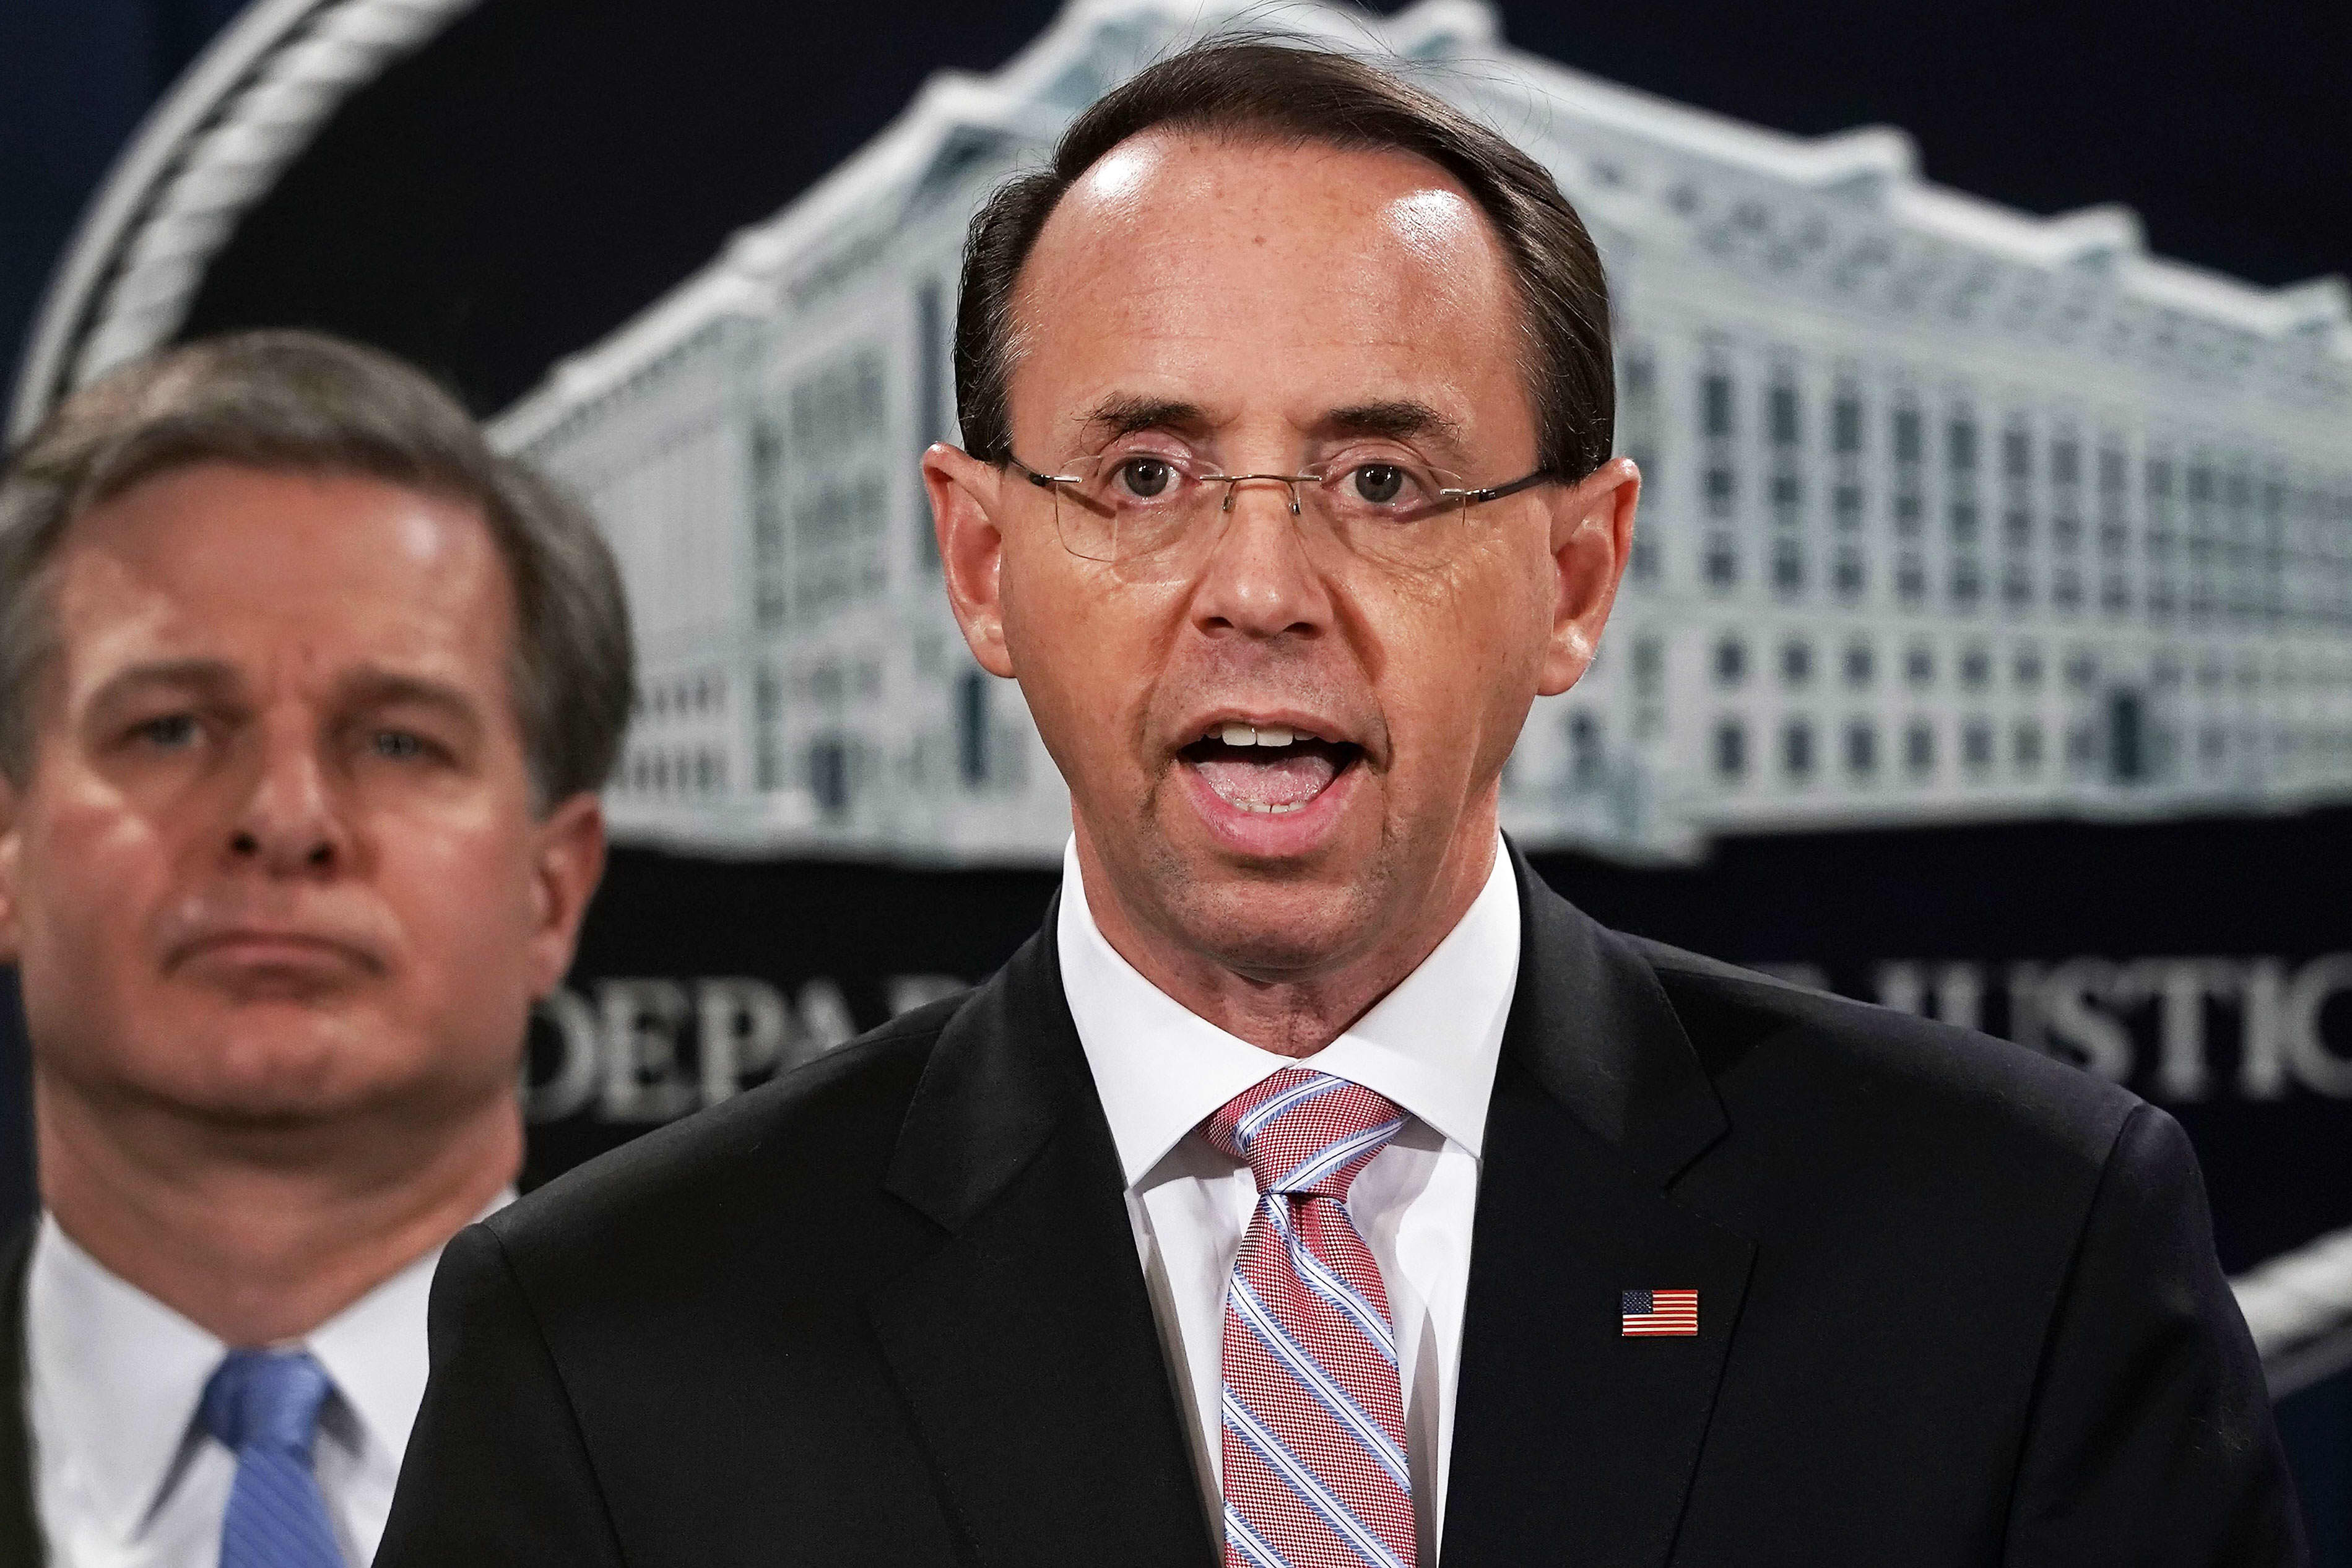 Deputy Attorney General Rod Rosenstein, who appointed special counsel Robert Mueller, submits resignation letter to Trump